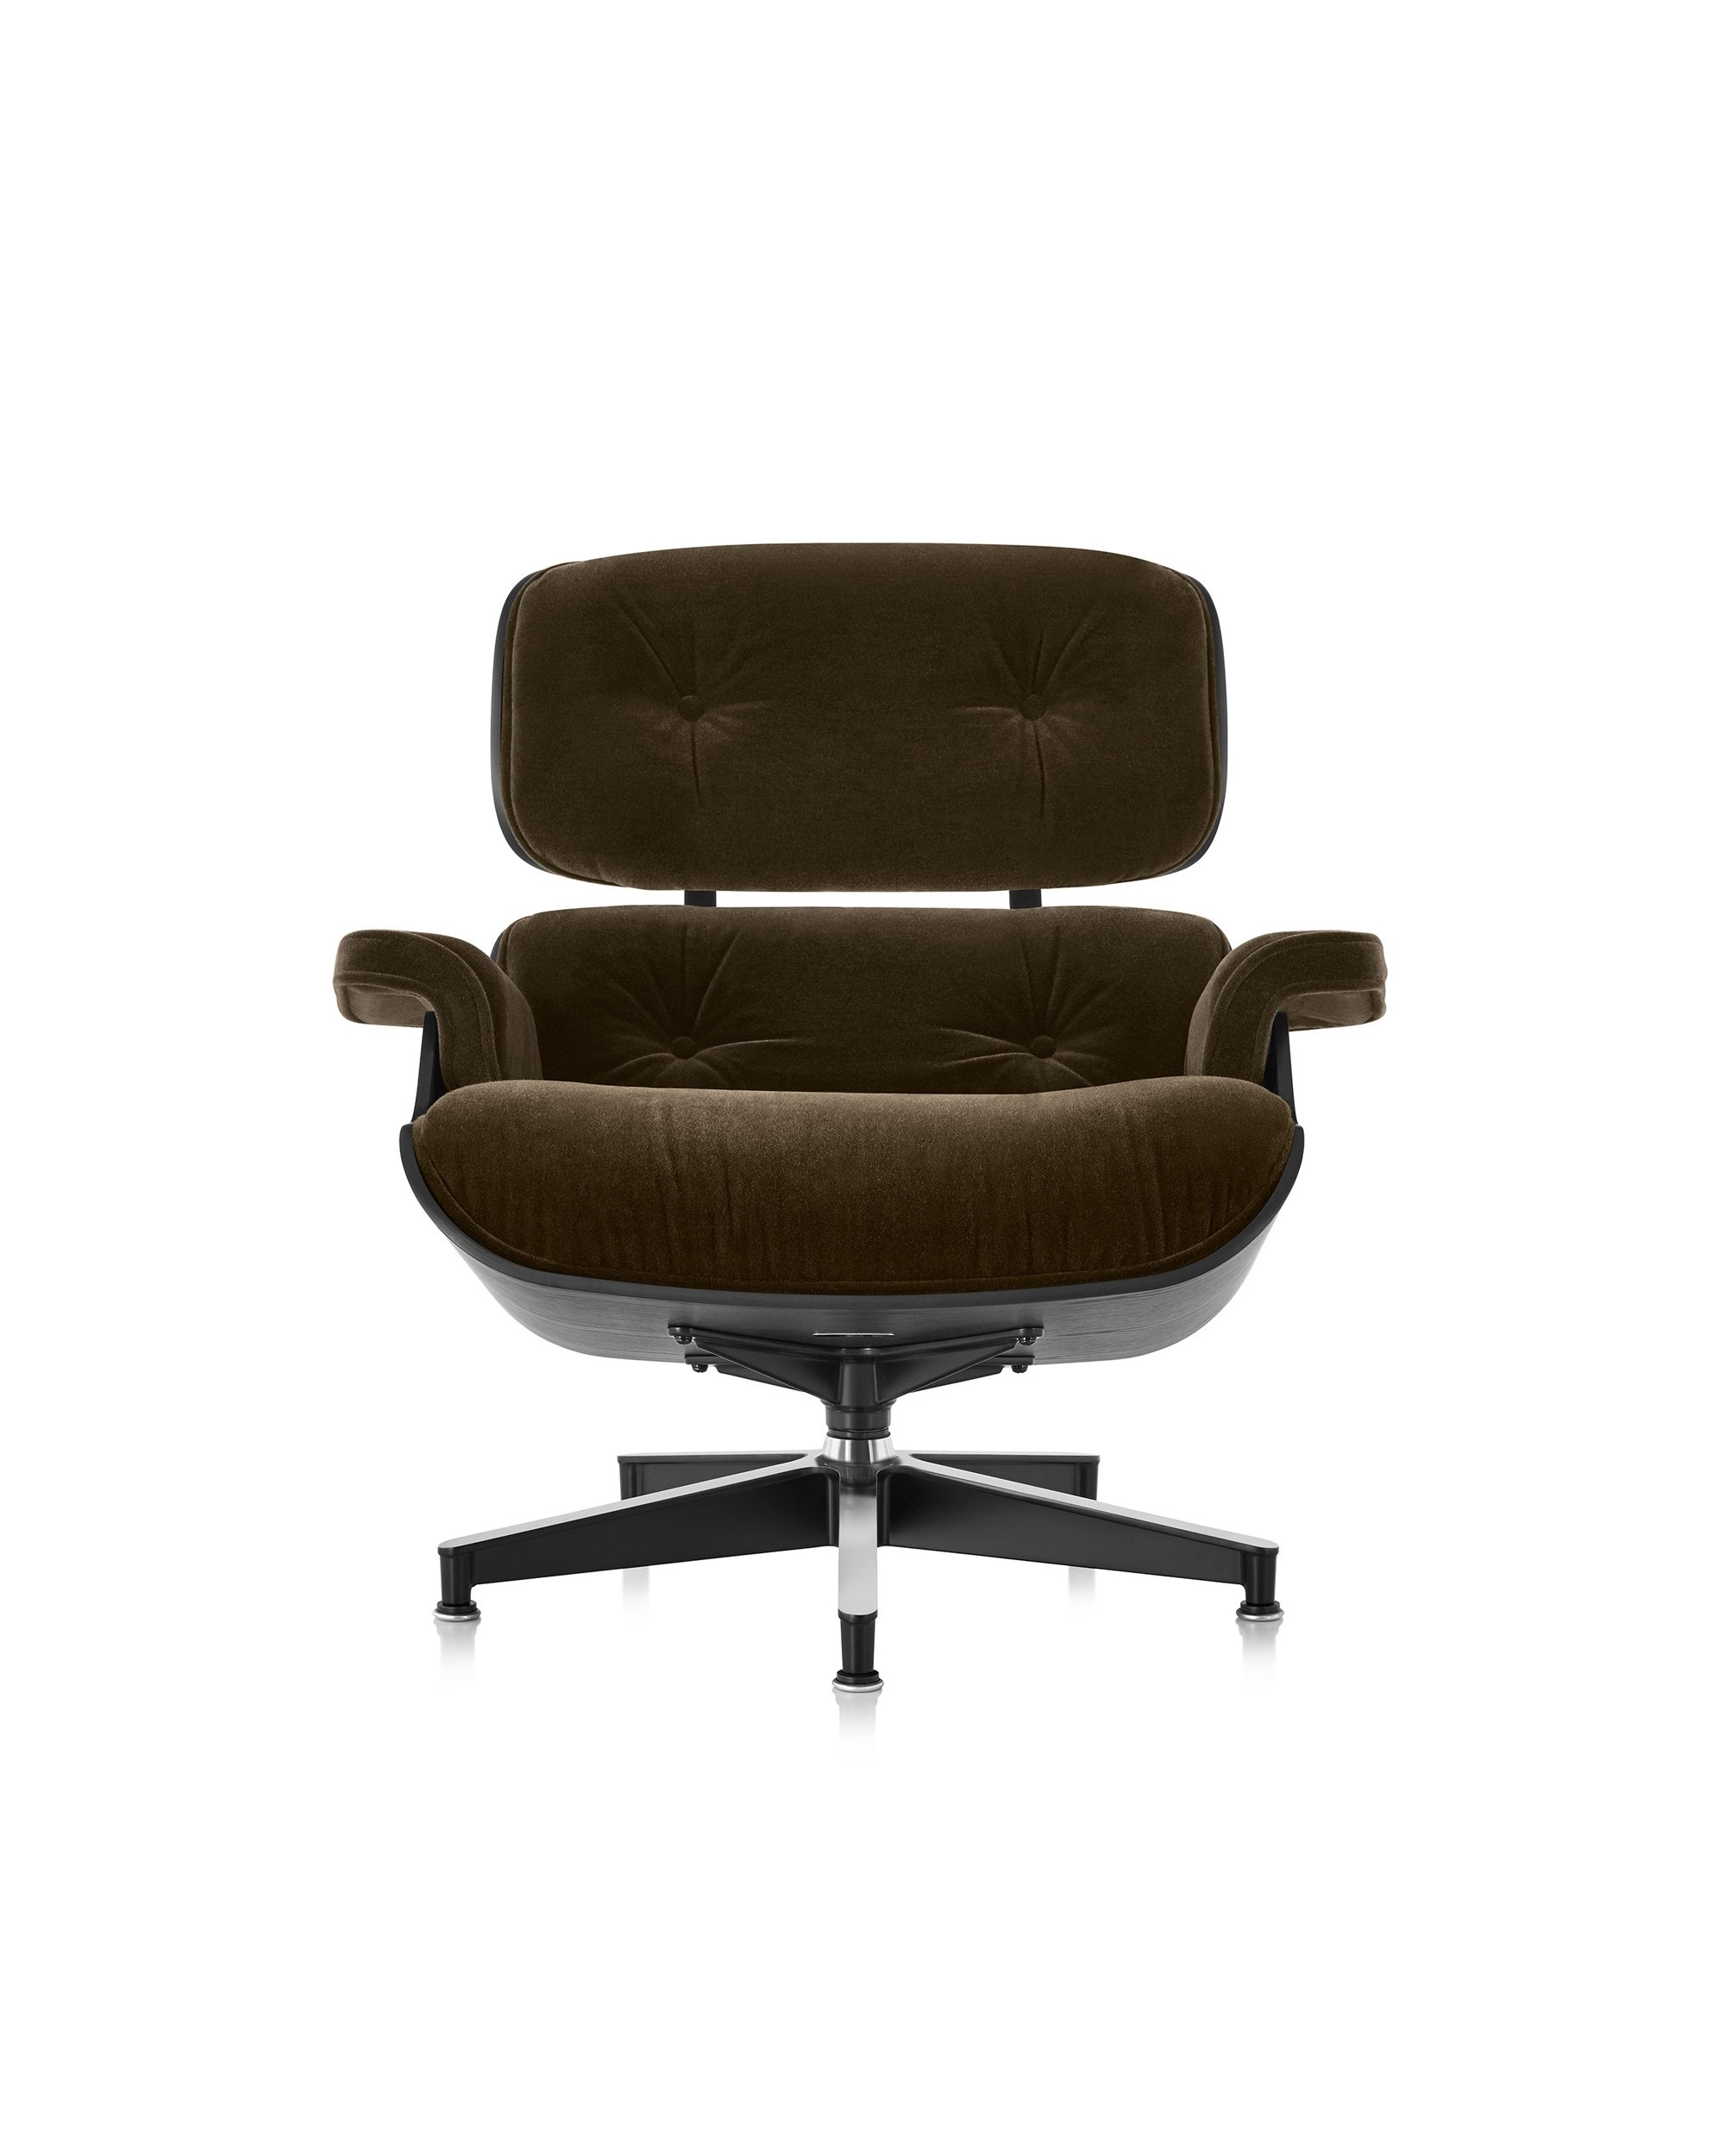 Herman Miller Eames® Lounge Chair Ebony in Mohair Supreme